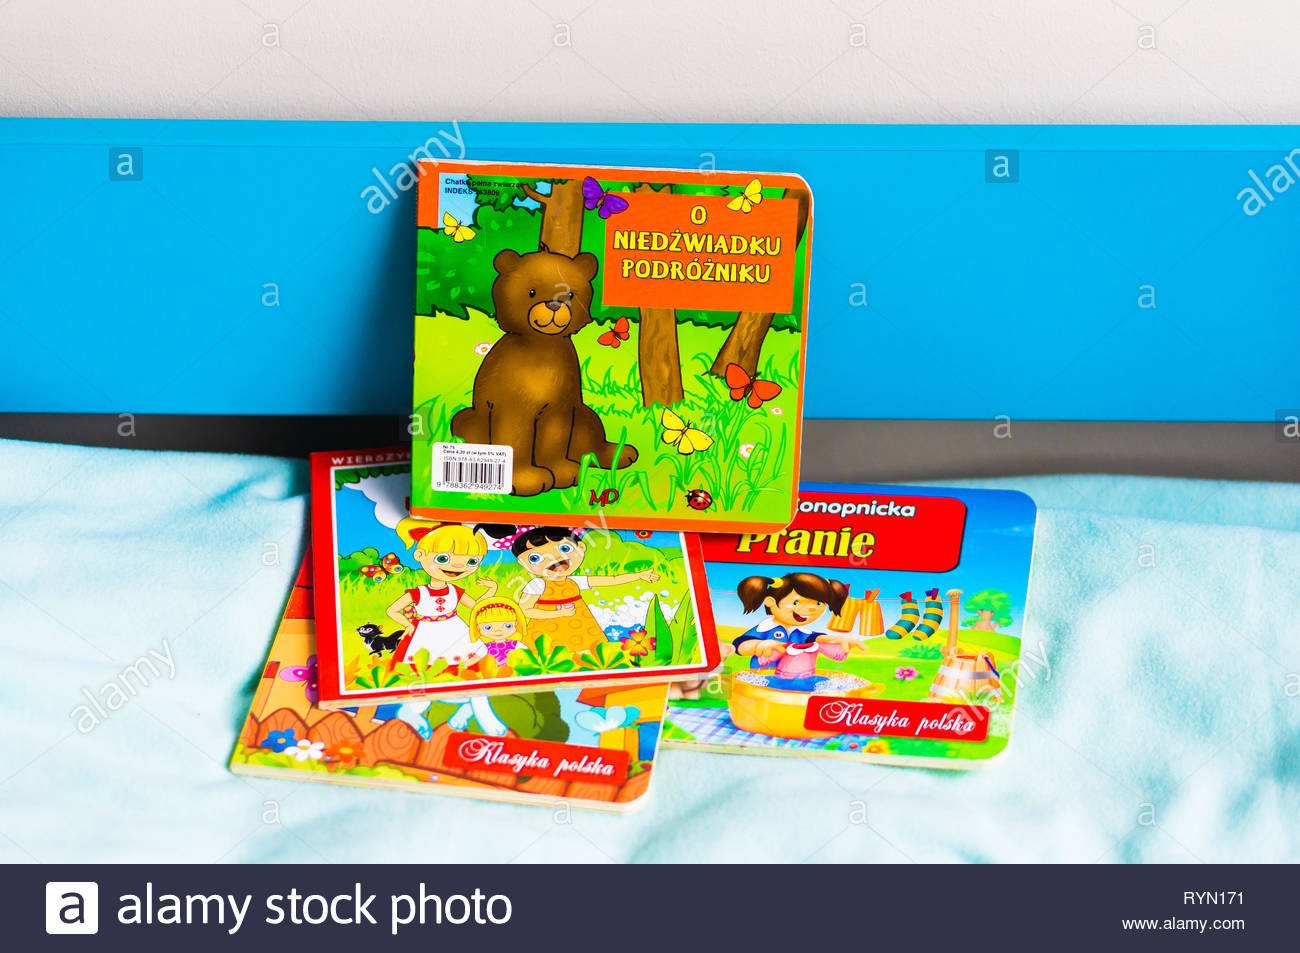 Poznan, Poland - November 18, 2018: Colorful Polish child book about a bear on a bed. Stock Photo